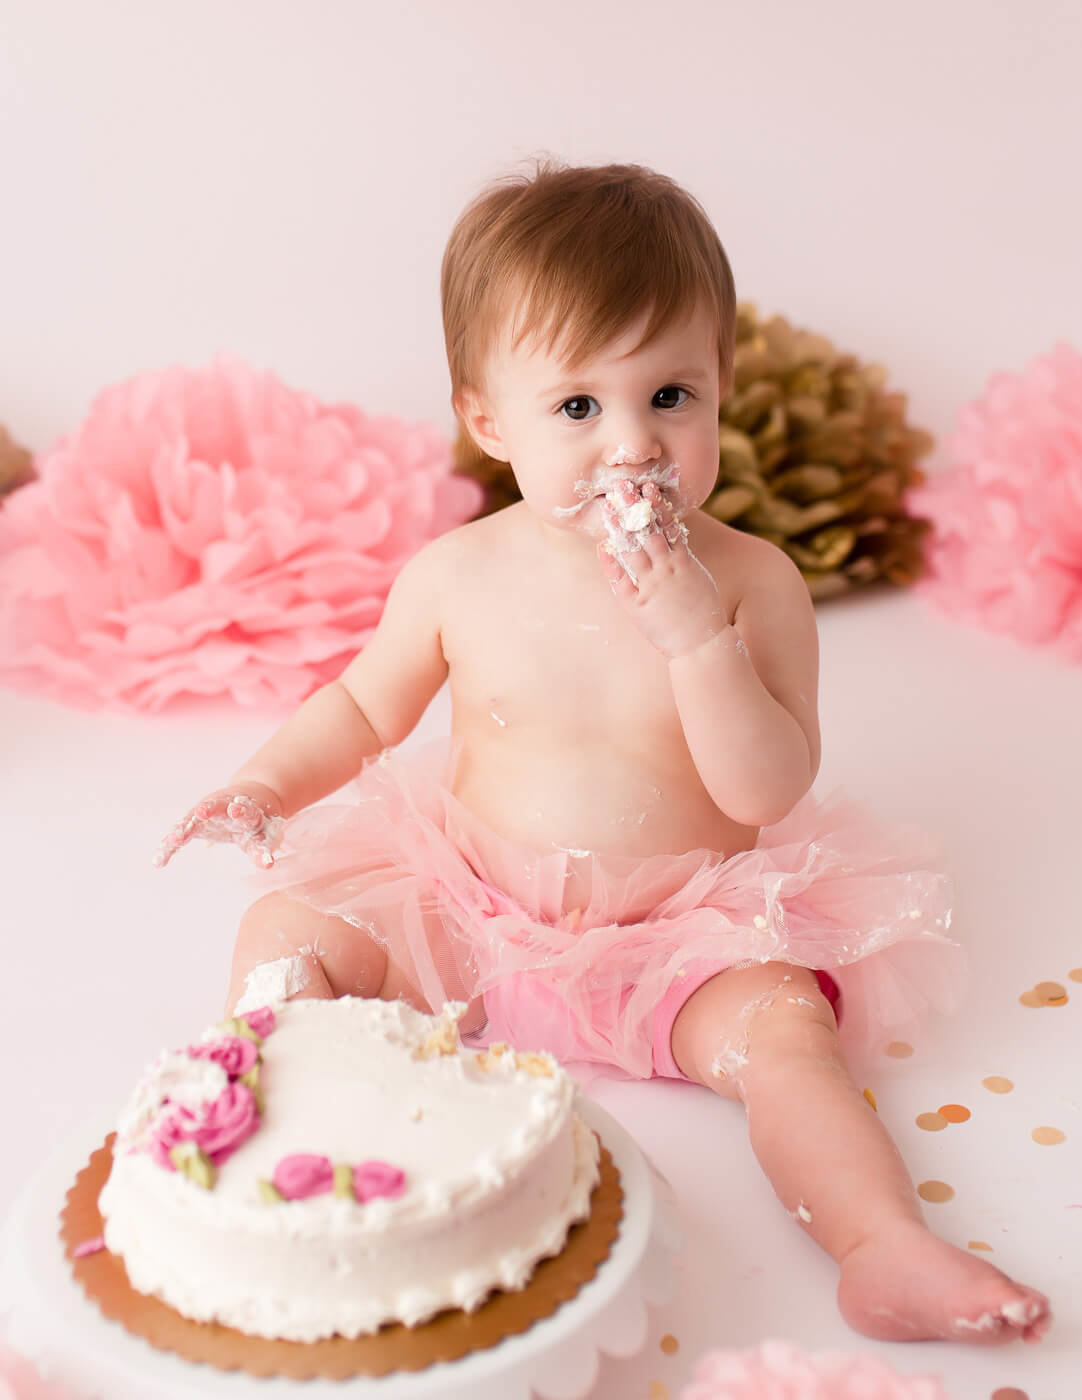 One year old cake smash in Rochester, NY.